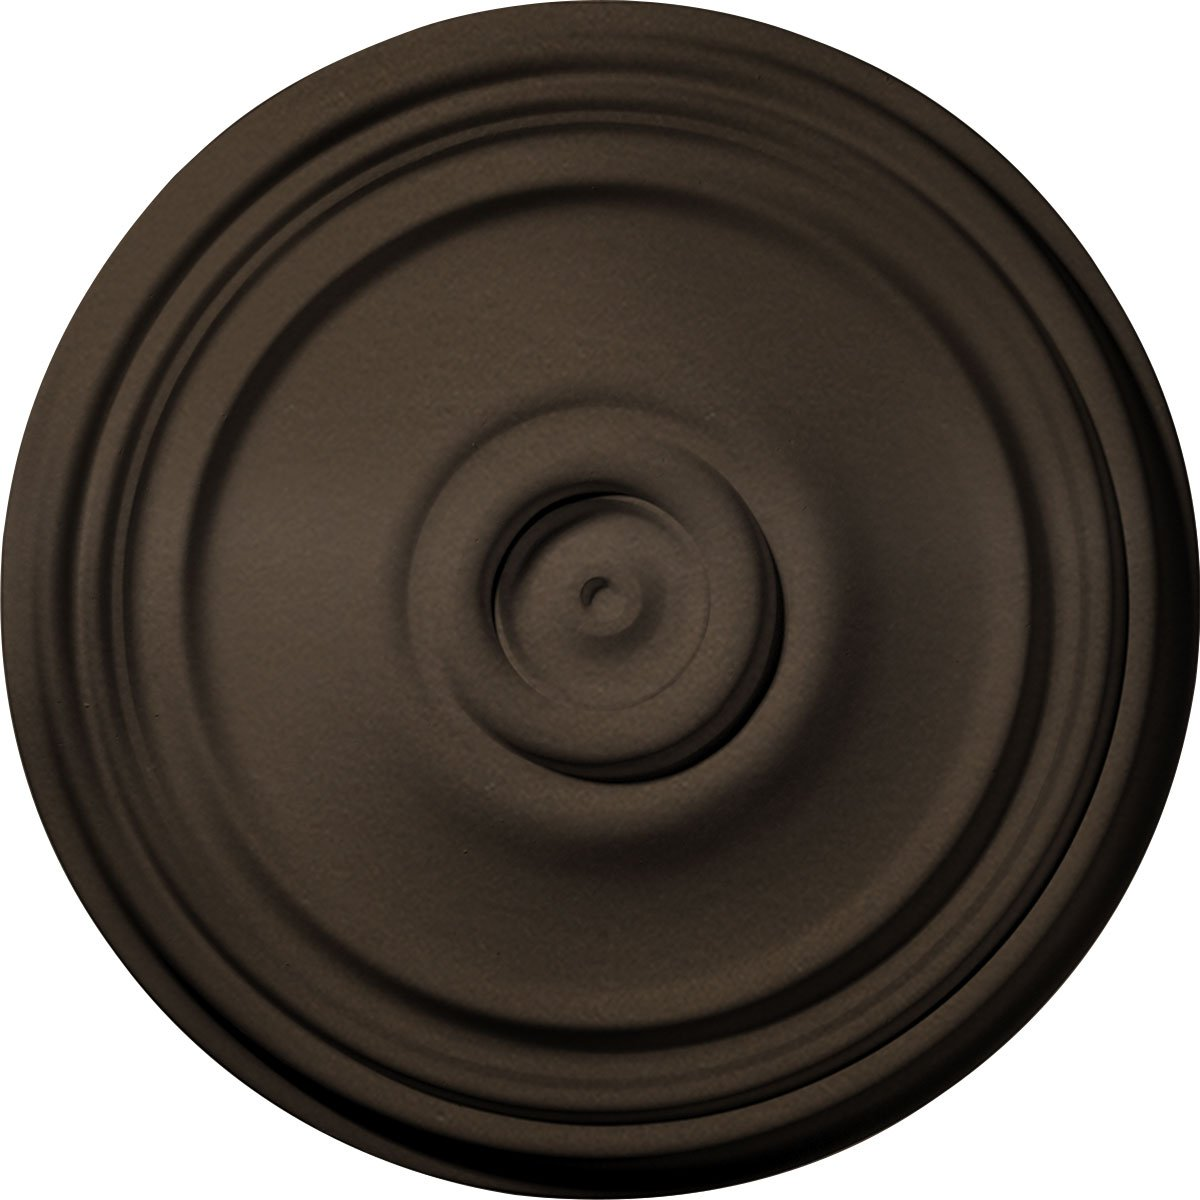 Ekena Millwork CM21REBZS 21'' OD x 1 1/4'' P Reece Ceiling Medallion (fits Canopies up to 6 3/4''), Bronze